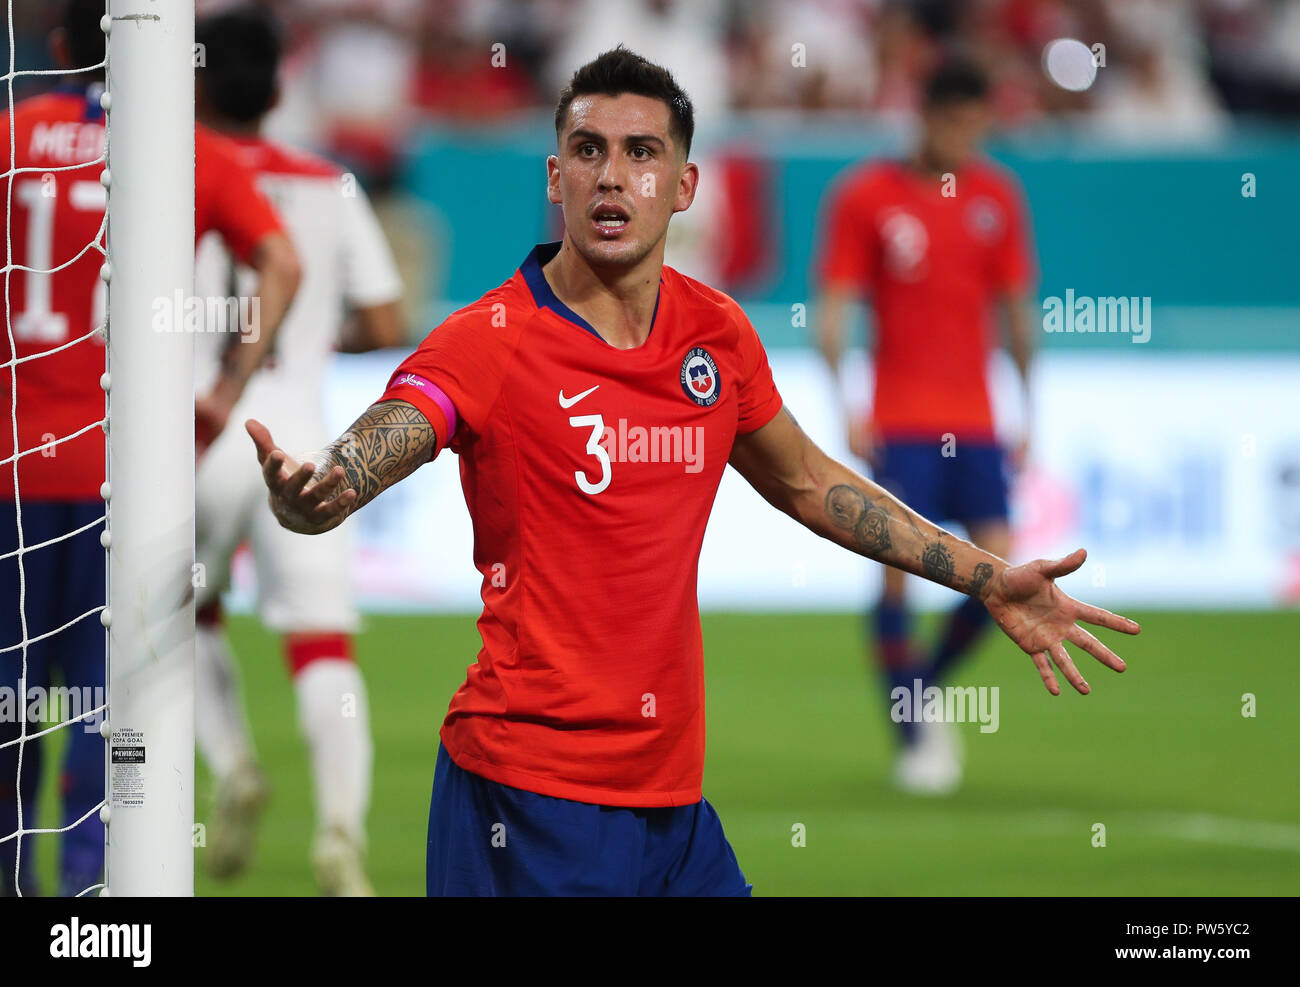 Miami Gardens, Florida, USA. 12th Oct, 2018. Chile defender ENZO ROCO (3) reacts to team-members after his auto-goal during an international friendly match between the Peru and Chile national soccer teams, at the Hard Rock Stadium in Miami Gardens, Florida. Credit: Mario Houben/ZUMA Wire/Alamy Live News - Stock Image